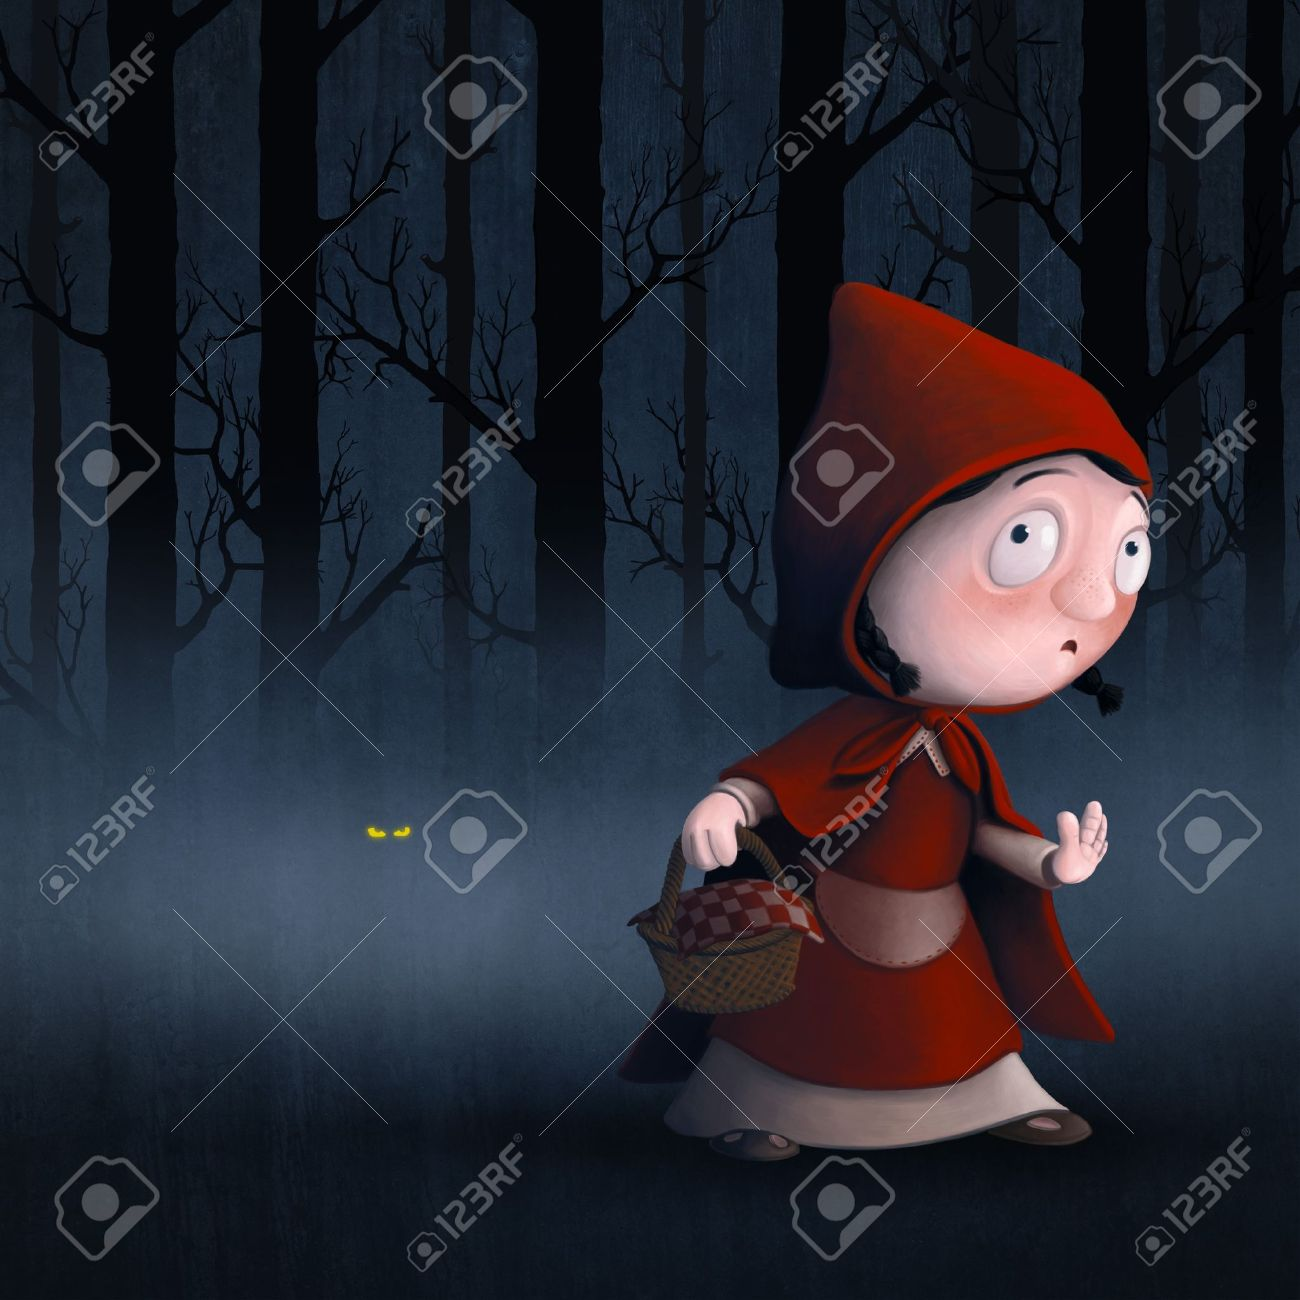 Little Red Riding Hood in a wood with the wolf Stock Photo - 17181944